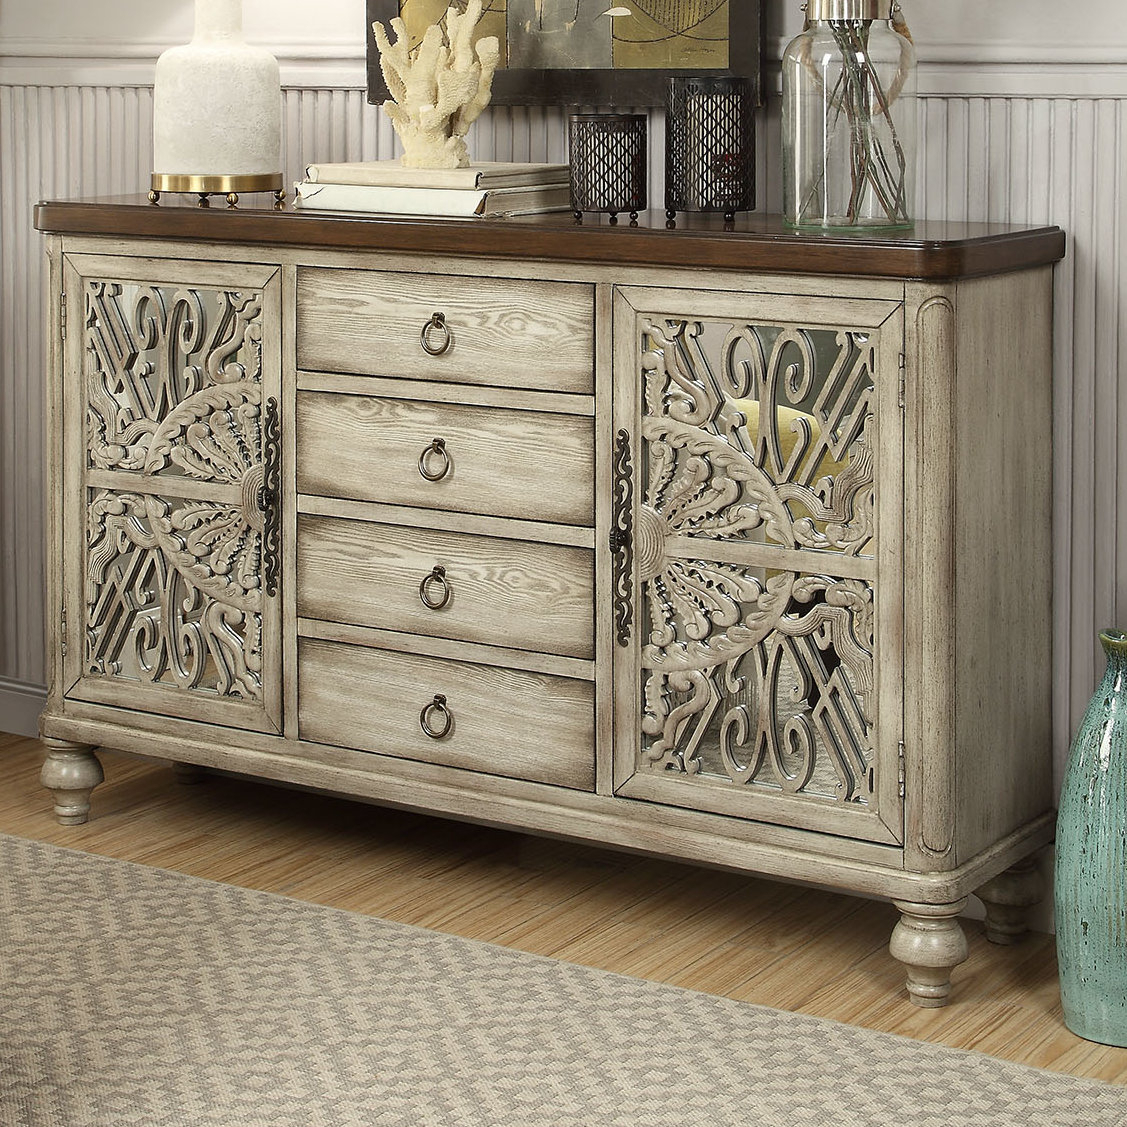 Dillen Sideboard & Reviews | Joss & Main Within 2017 Knoxville Sideboards (View 16 of 20)